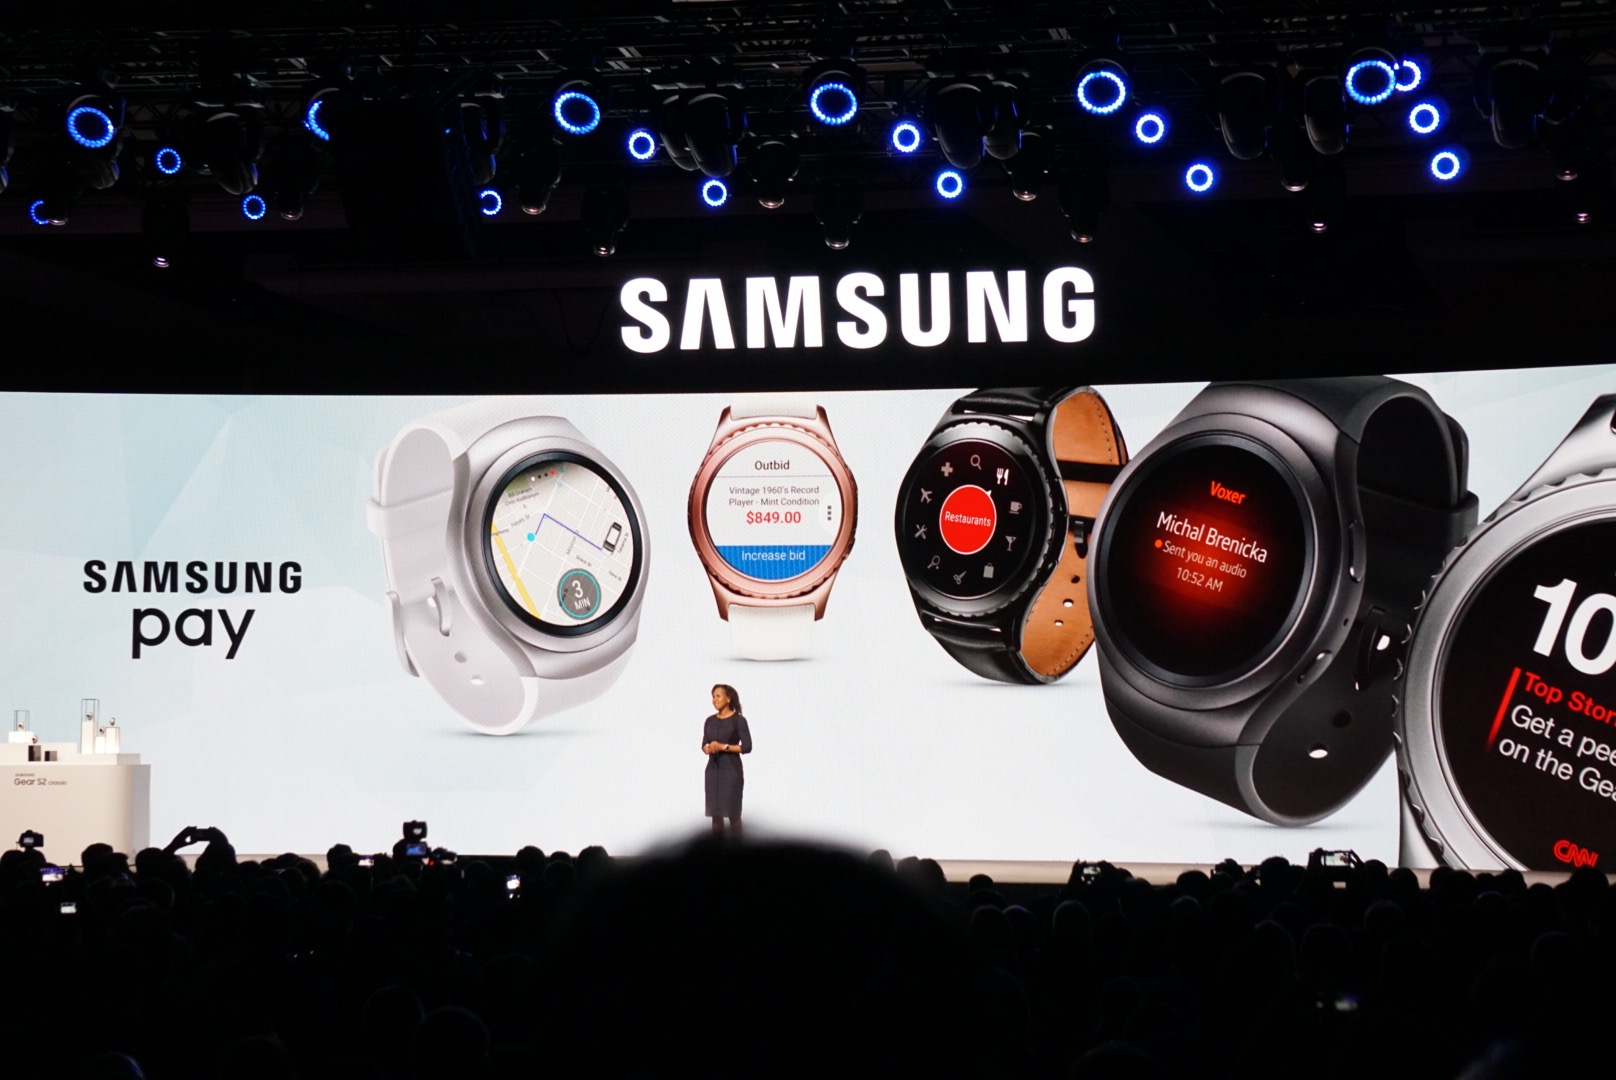 You'll soon be able to pay using Samsung Pay and NFC from the smartwatches.